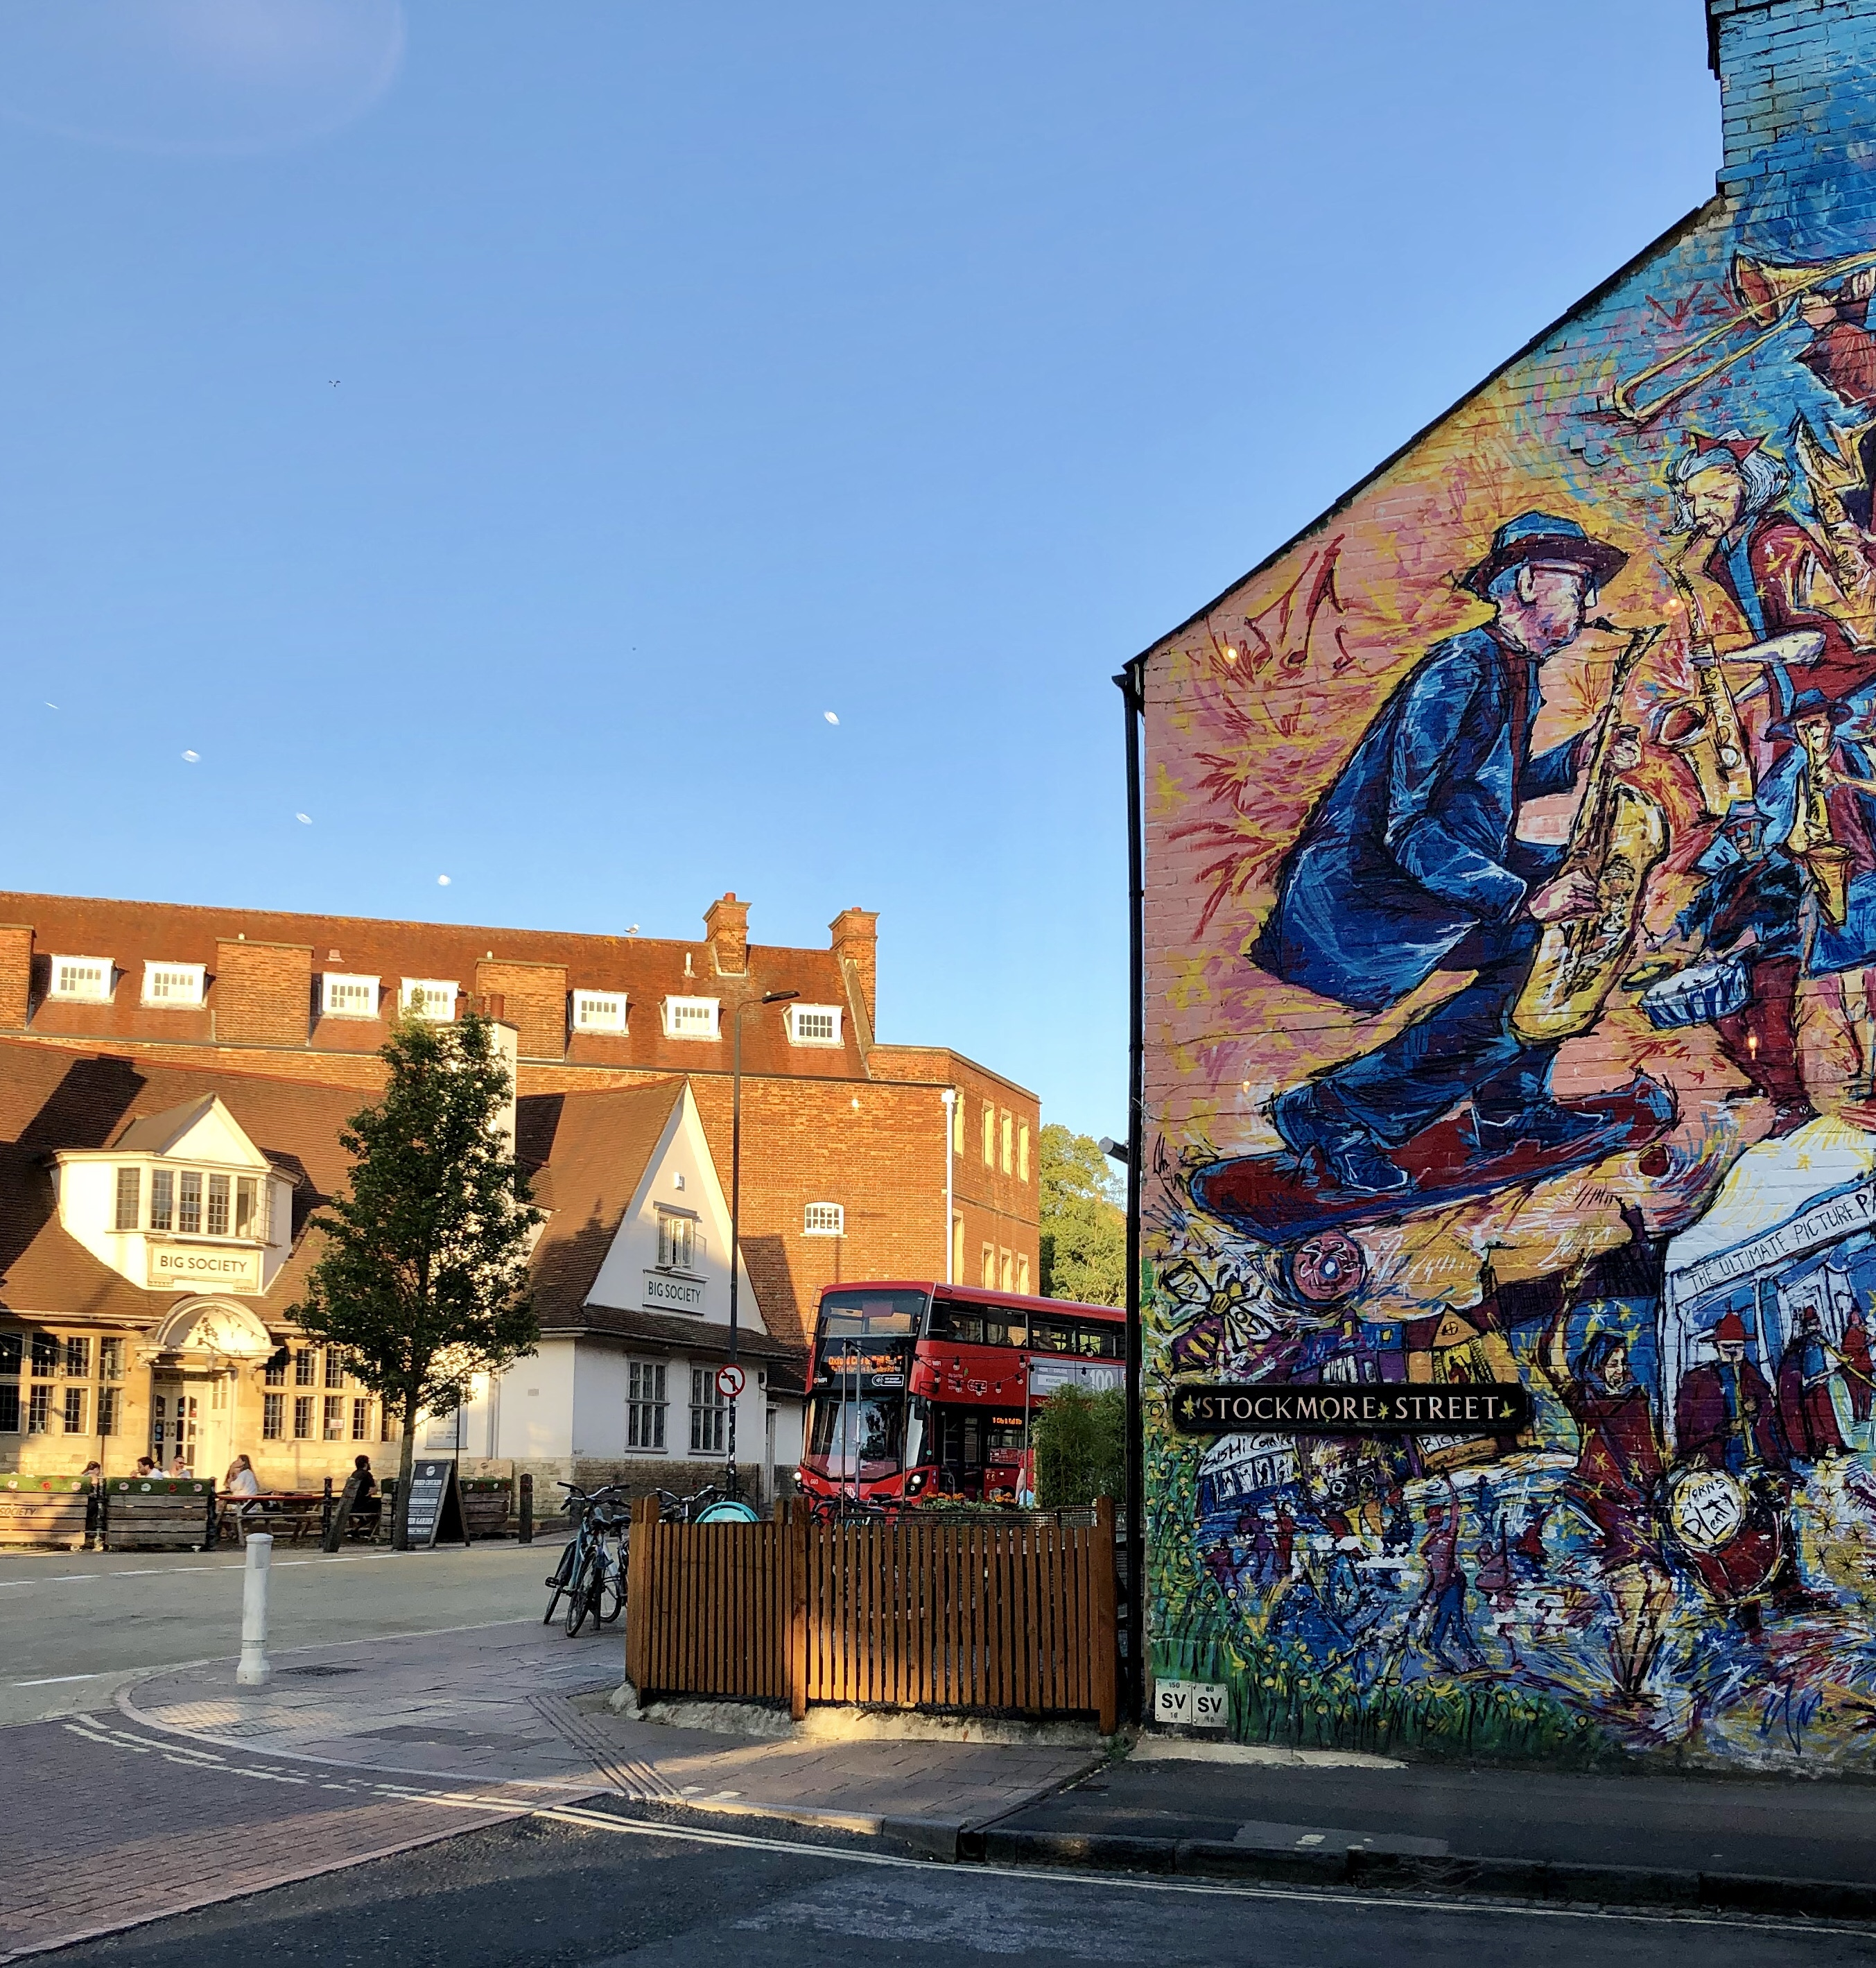 A view of street art from the window of Atomic Burger, Oxford